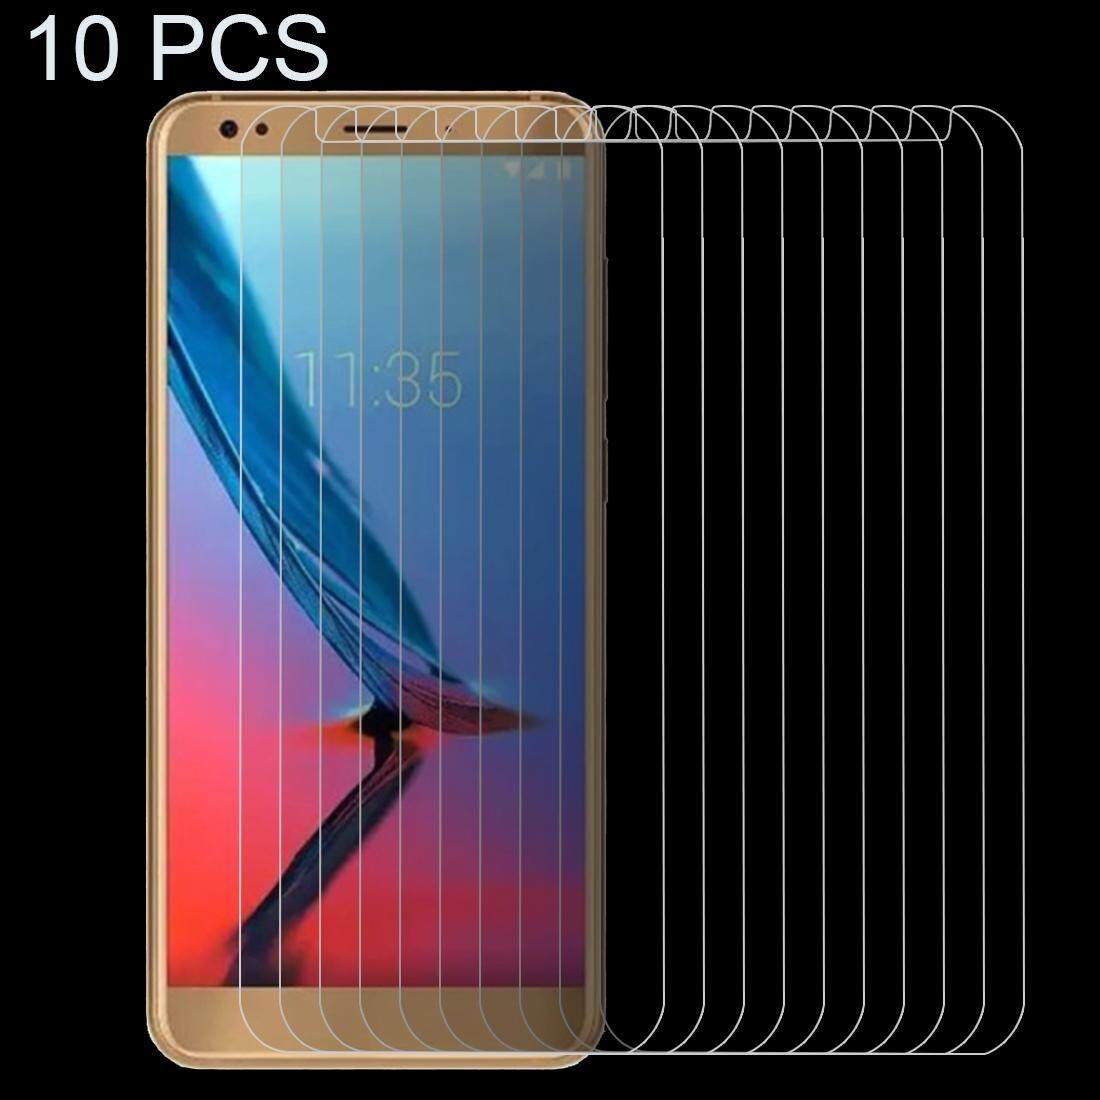 10 PCS for ZTE Blade V9 Vita 0.26mm 9H Surface Hardness 2.5D Tempered Glass Screen Film